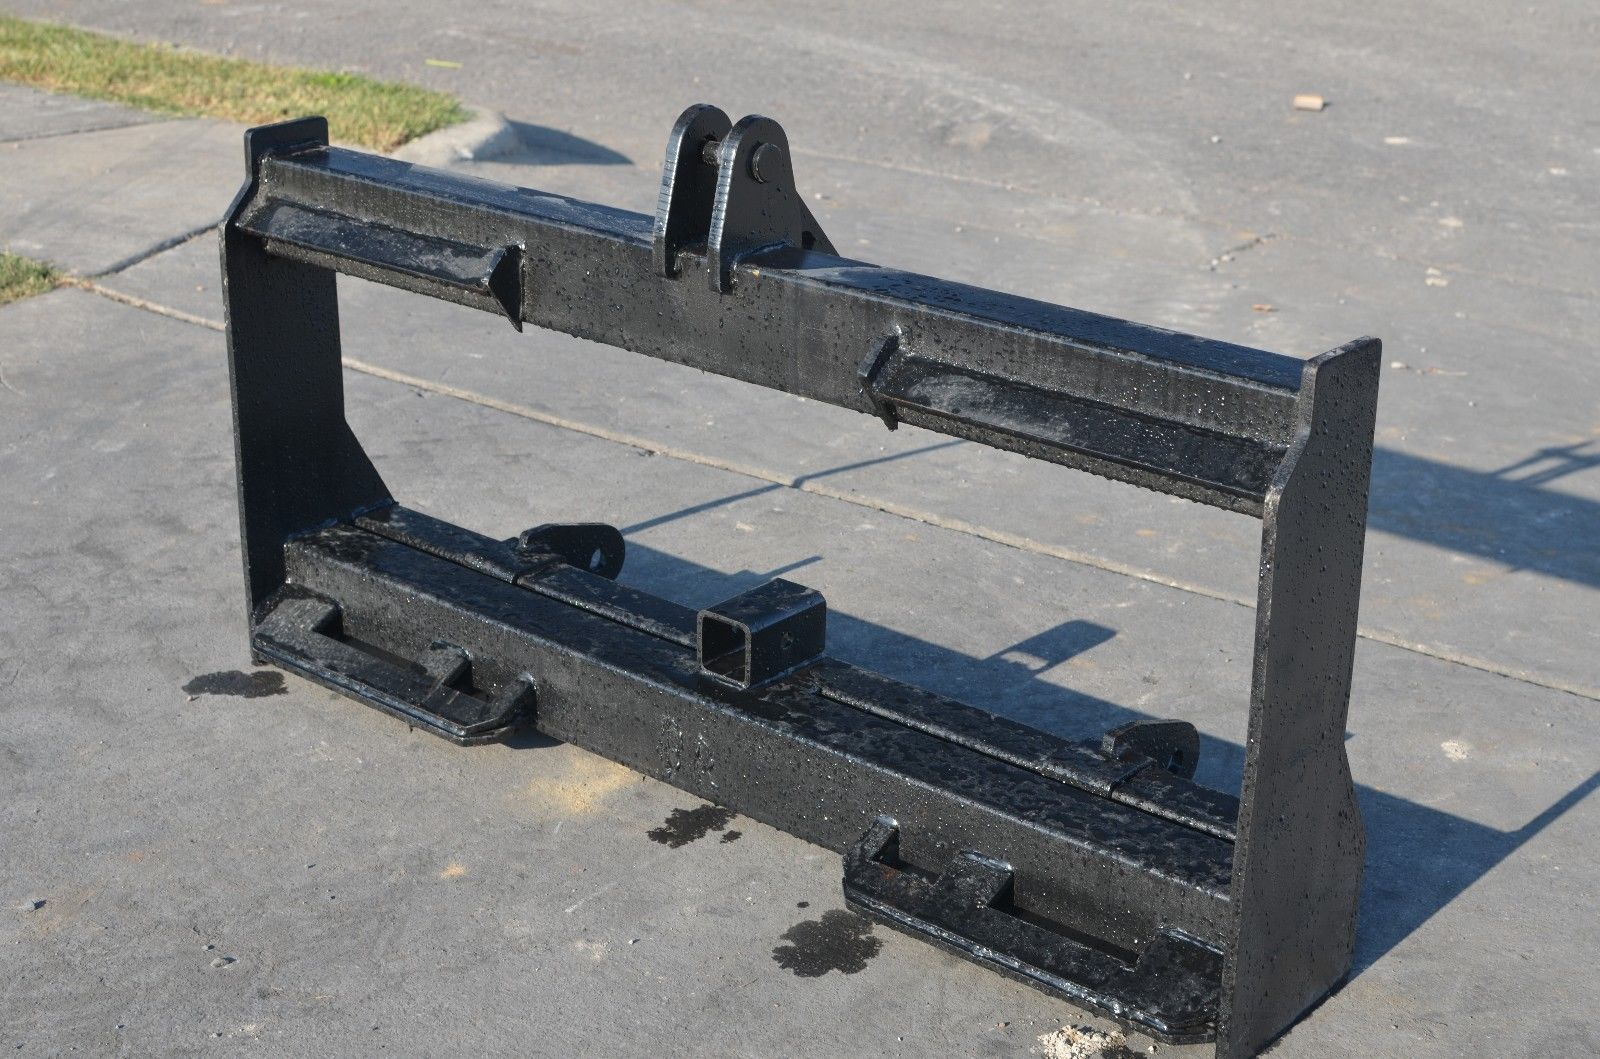 American Tire Depot >> Skid Steer to 3 Point Hitch Adapter Conversion - Skid Steer Attachment Depot